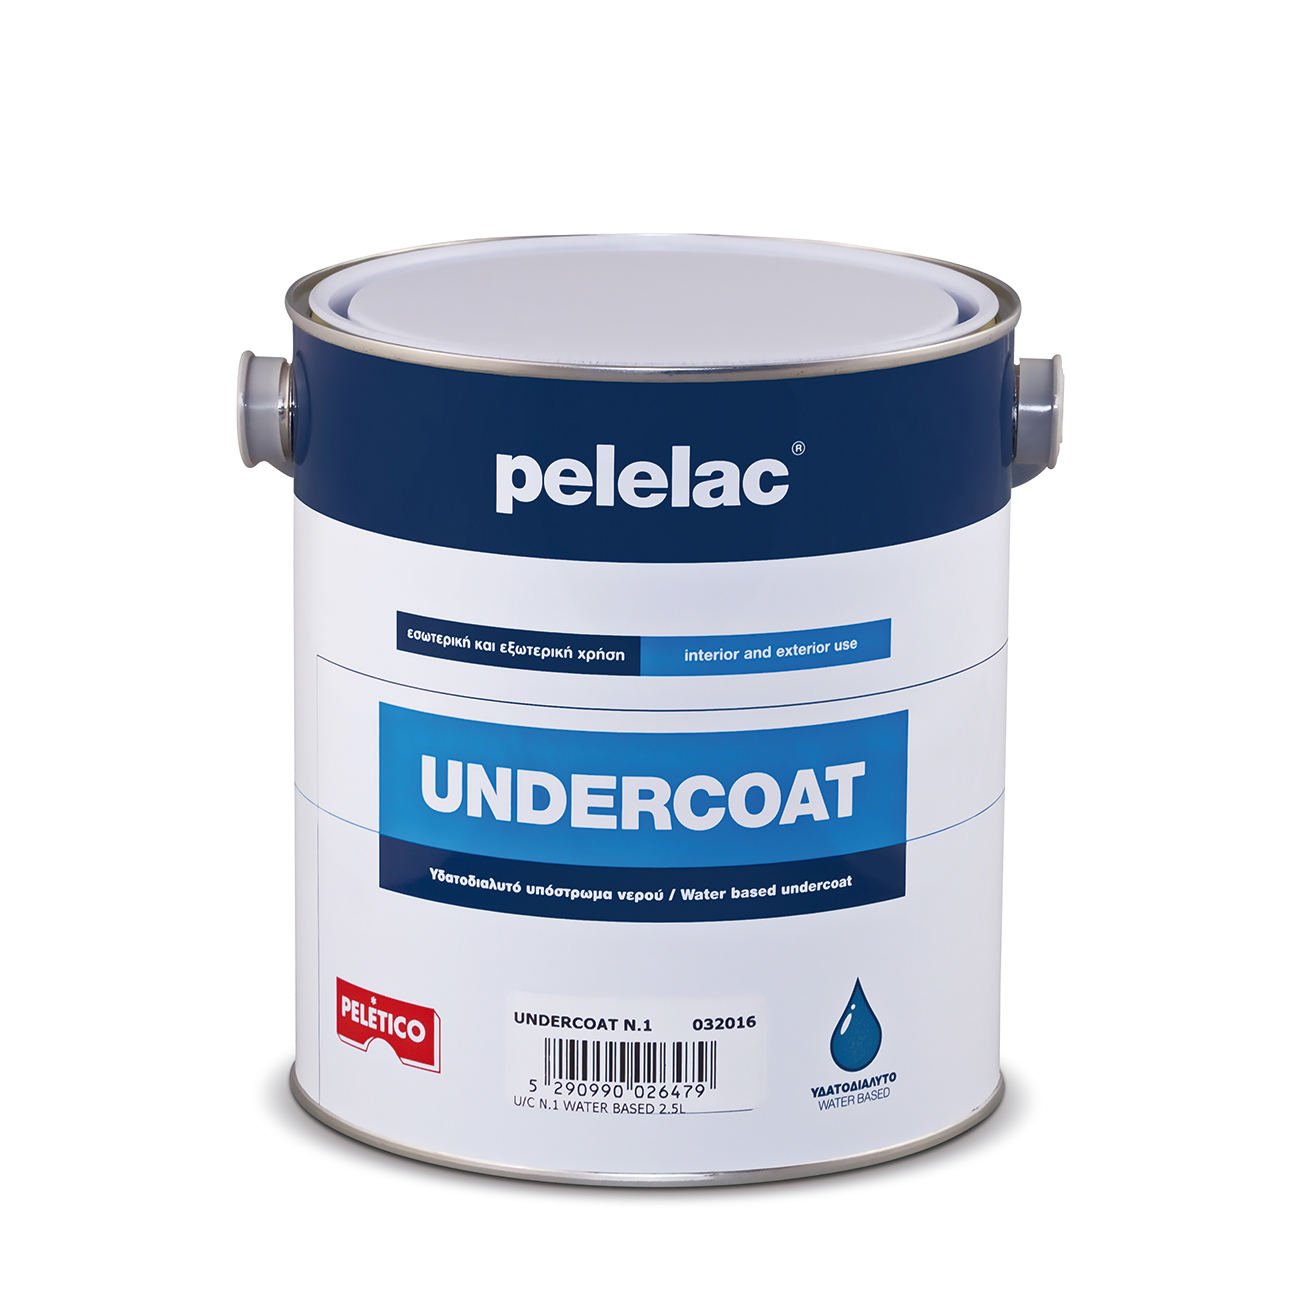 PELELAC UNDERCOAT N.4 WATER BASED 2.5L